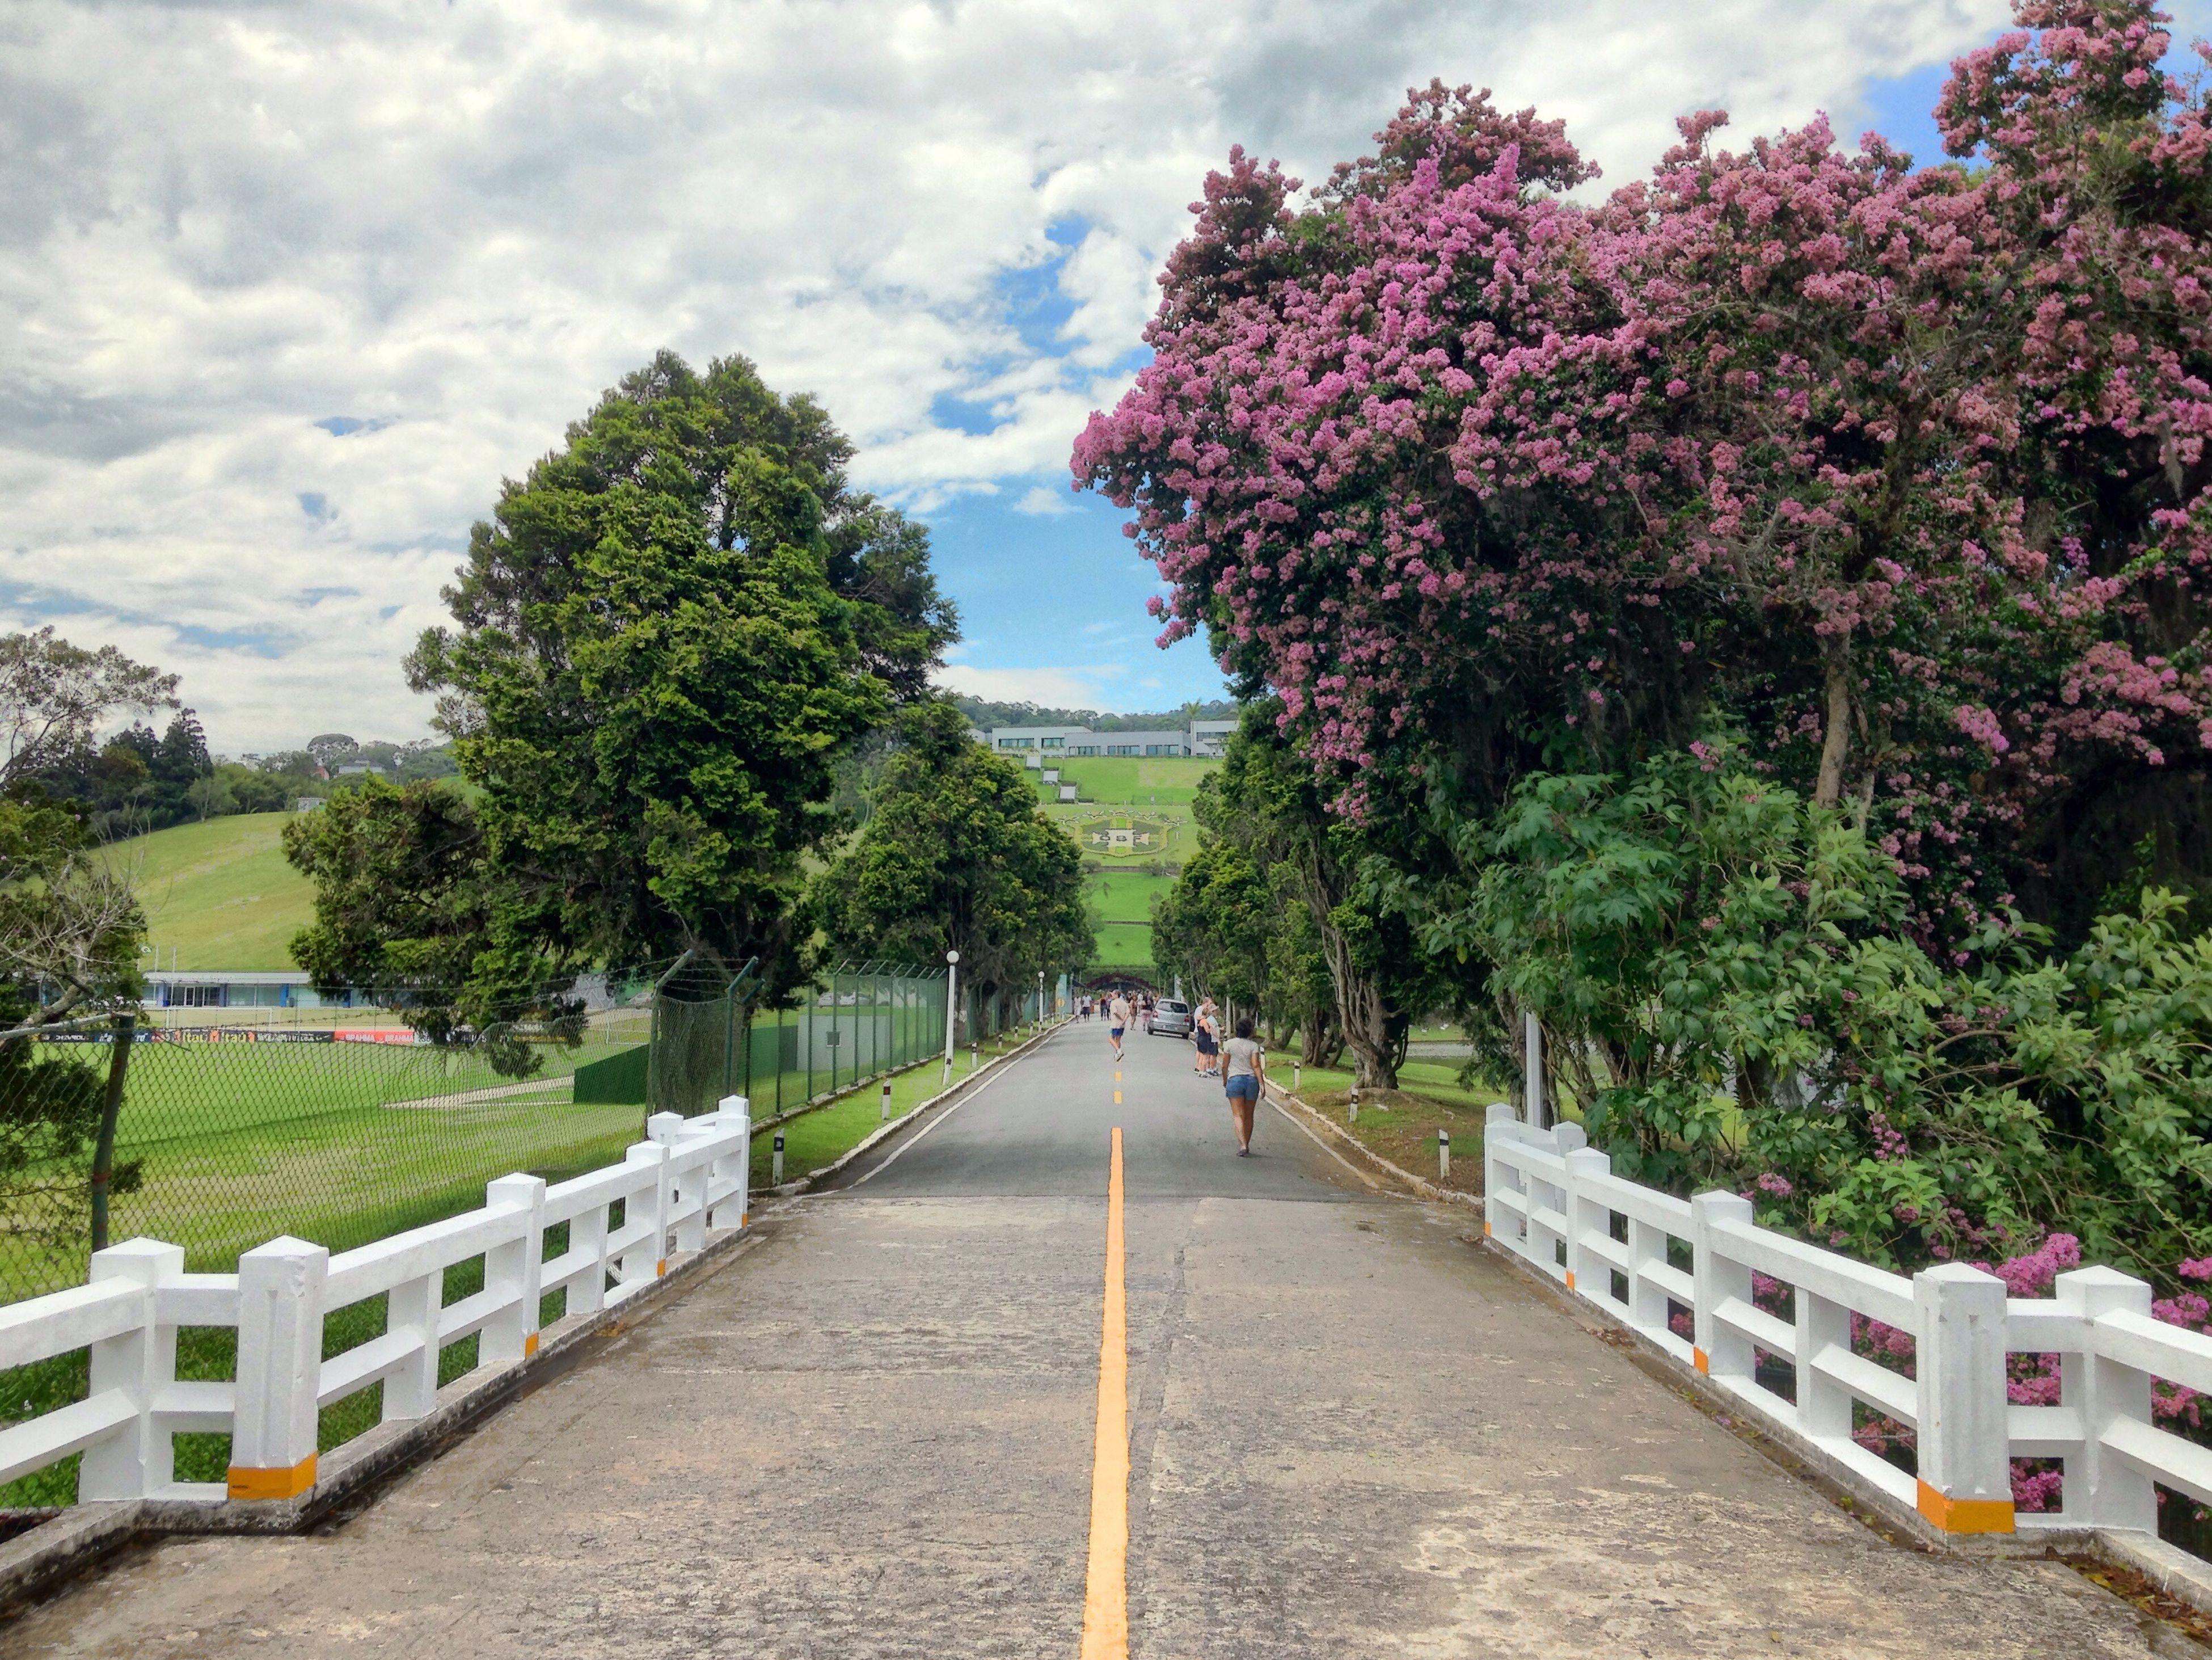 tree, sky, the way forward, growth, cloud - sky, built structure, incidental people, footpath, park - man made space, nature, architecture, walkway, diminishing perspective, flower, cloud, building exterior, beauty in nature, day, treelined, outdoors